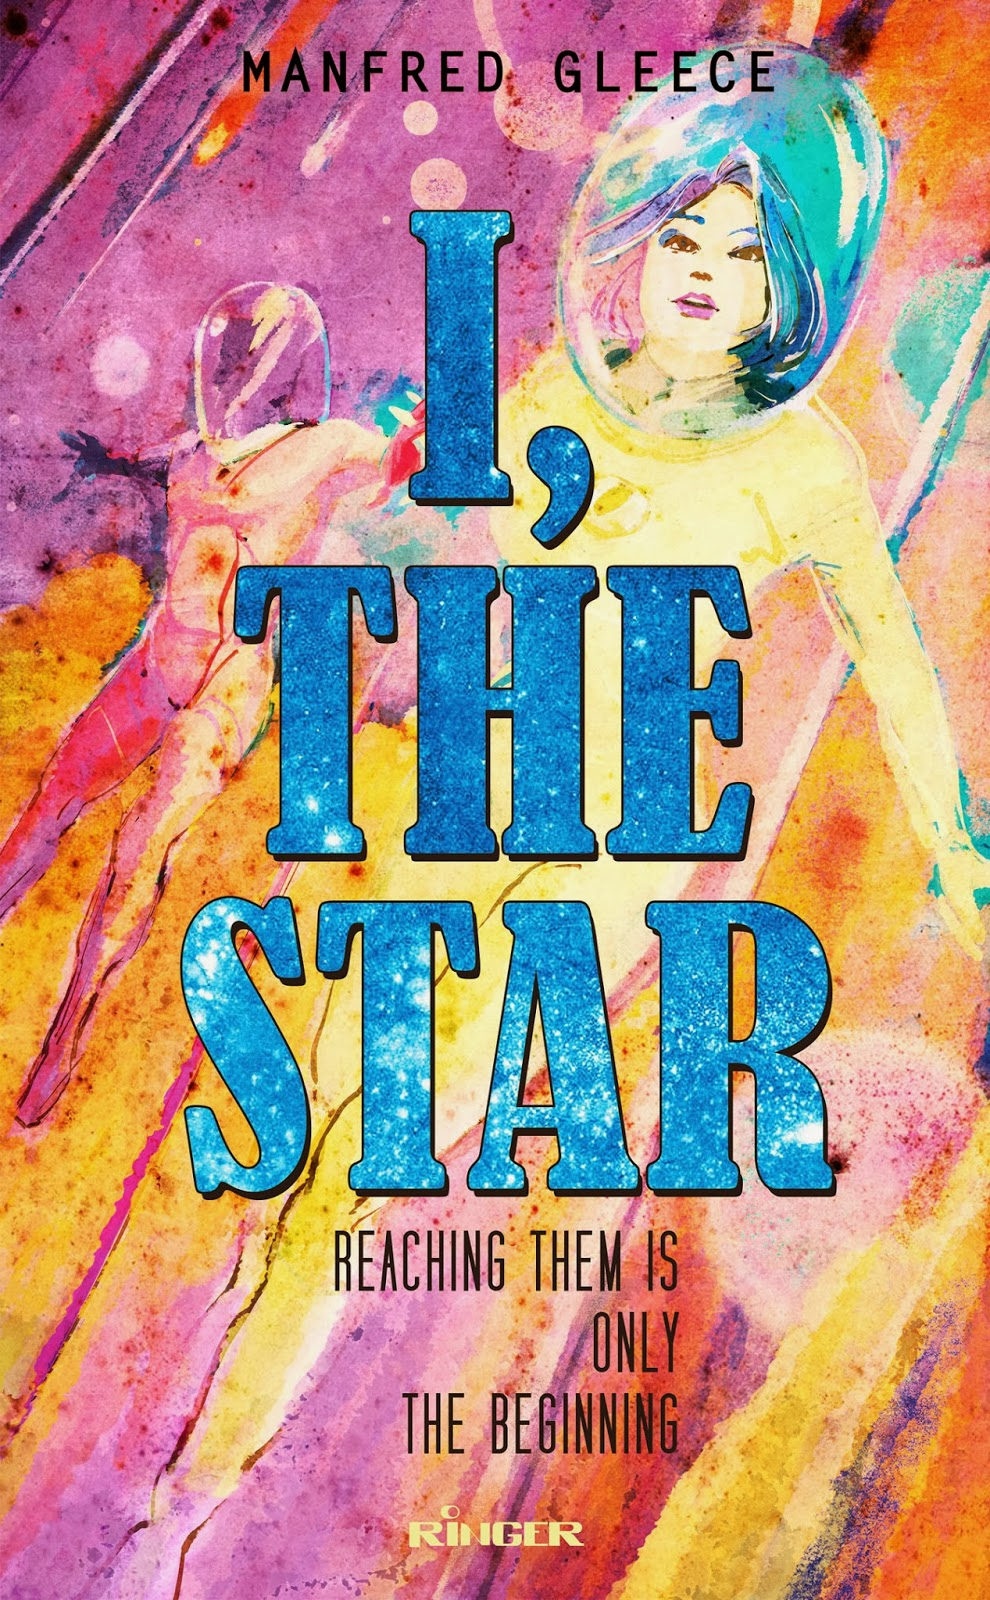 Ringer Publishing Paperbacks - I The Star cover - Curio & Co. www.curioandco.com - Illustration and Design by Cesare Asaro